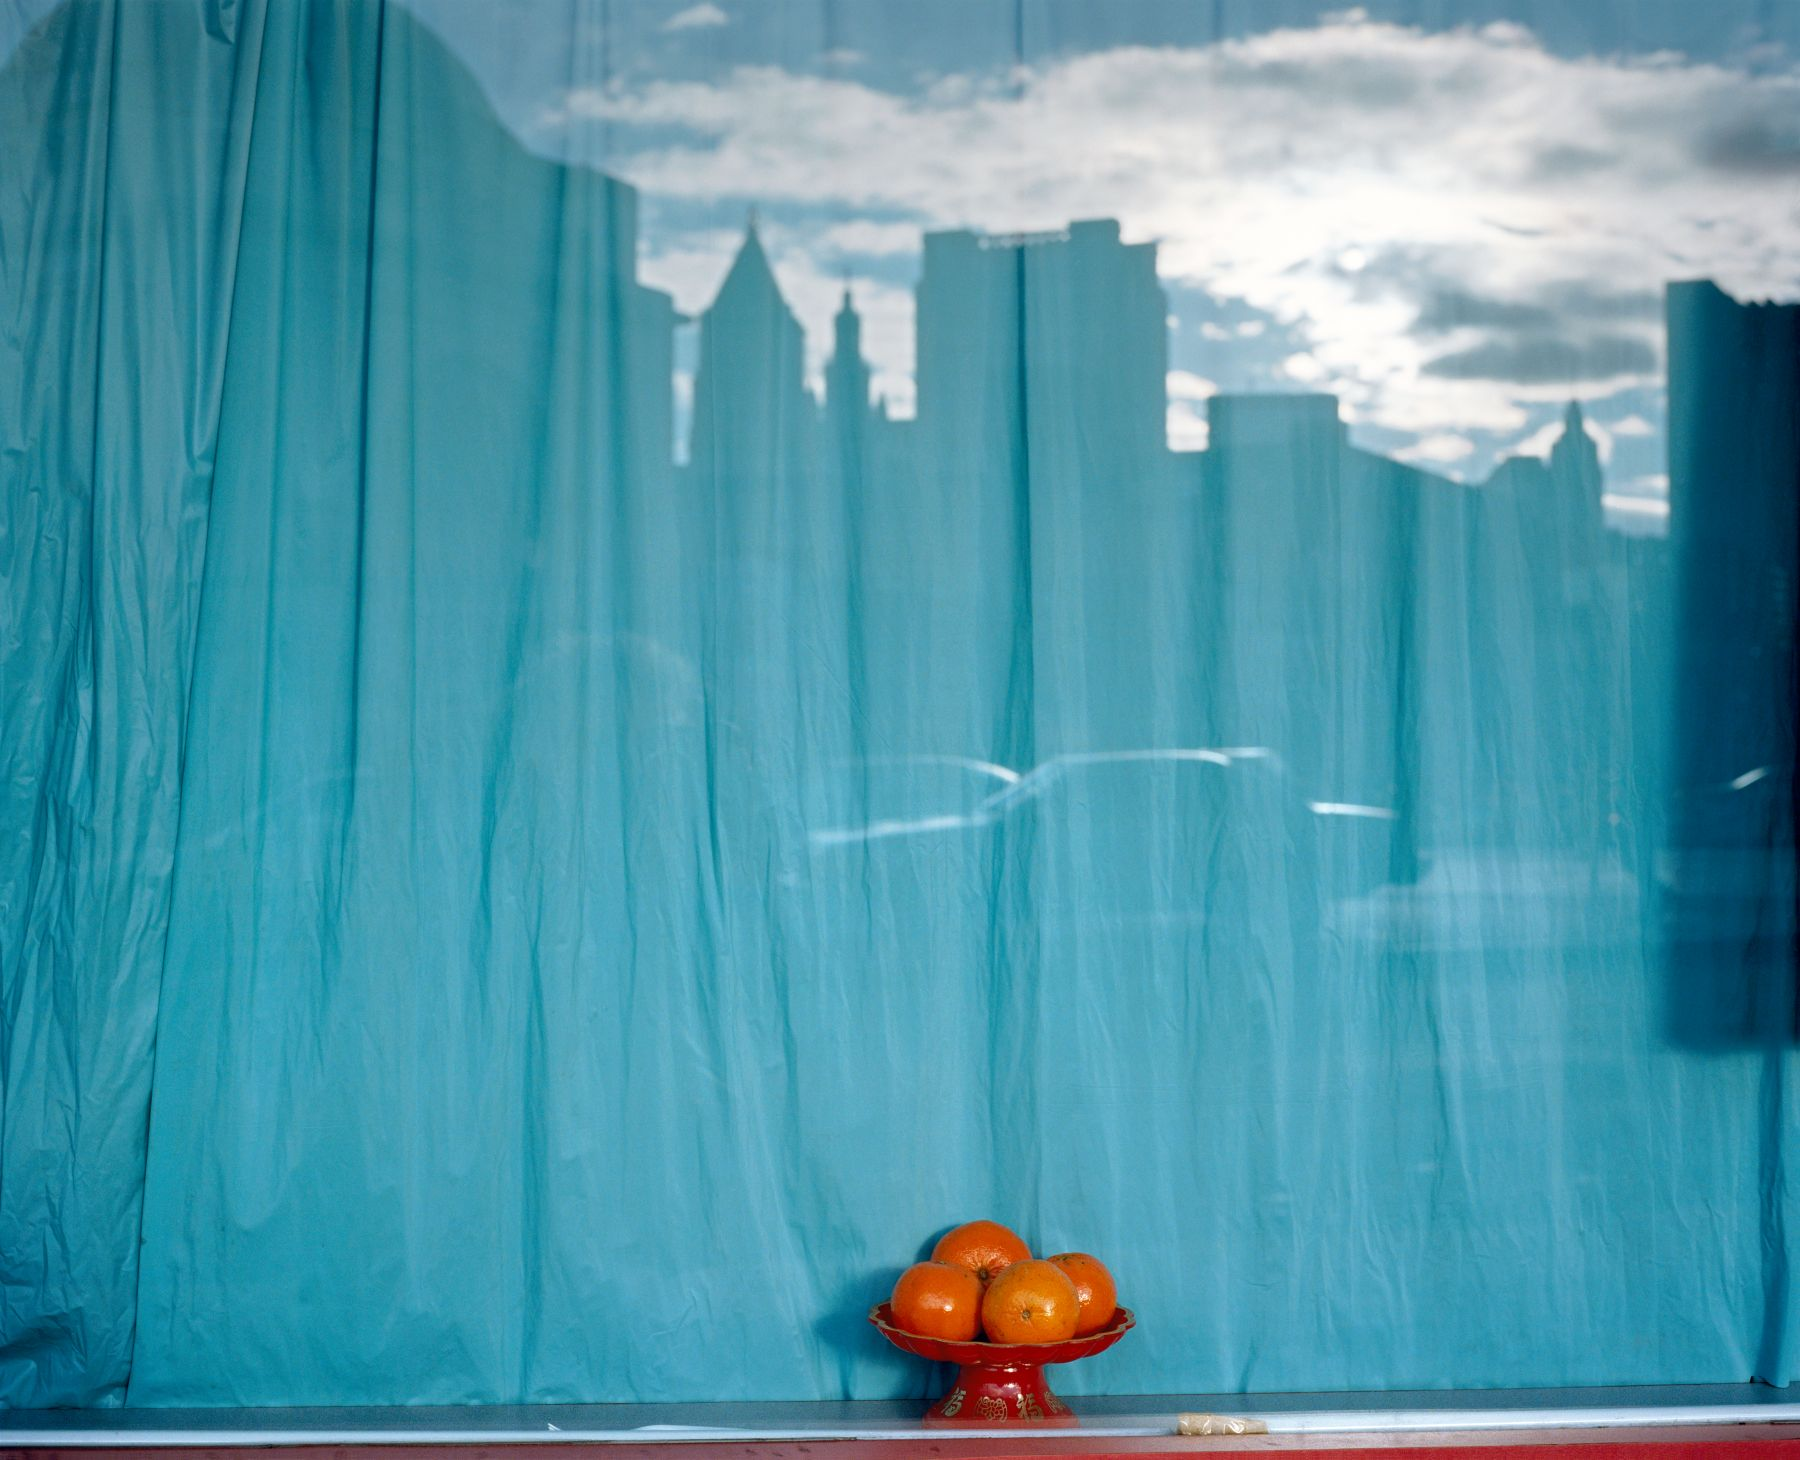 Untitled, New York #18, from the series The City, 1996. Chromogenic print,24 x 30 or 40 x 50 inches.